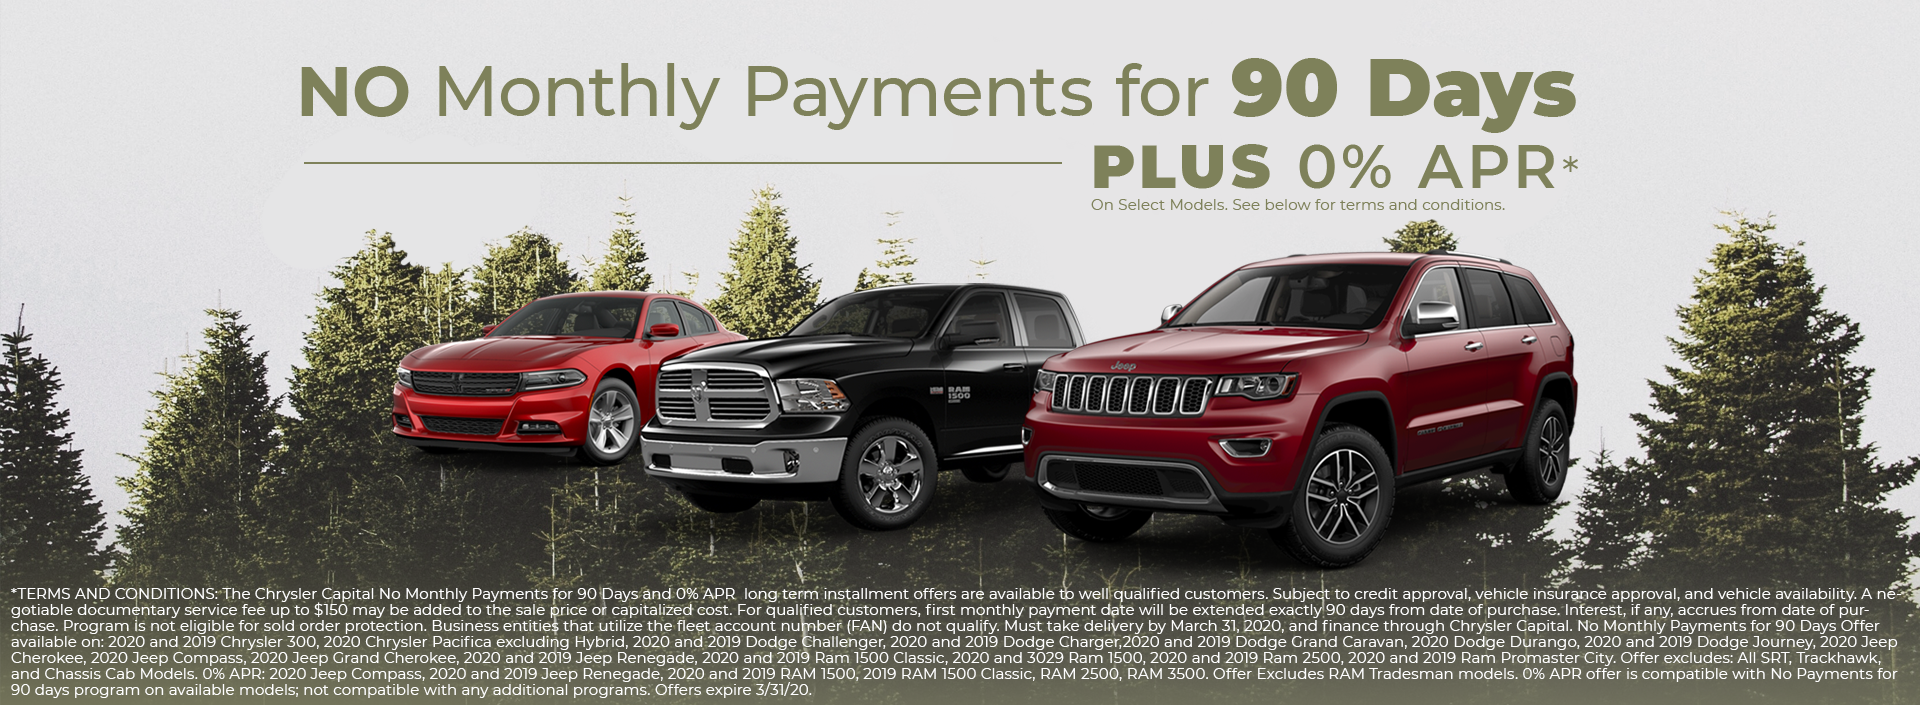 No monthly payments for 90 days plus 0% apr.